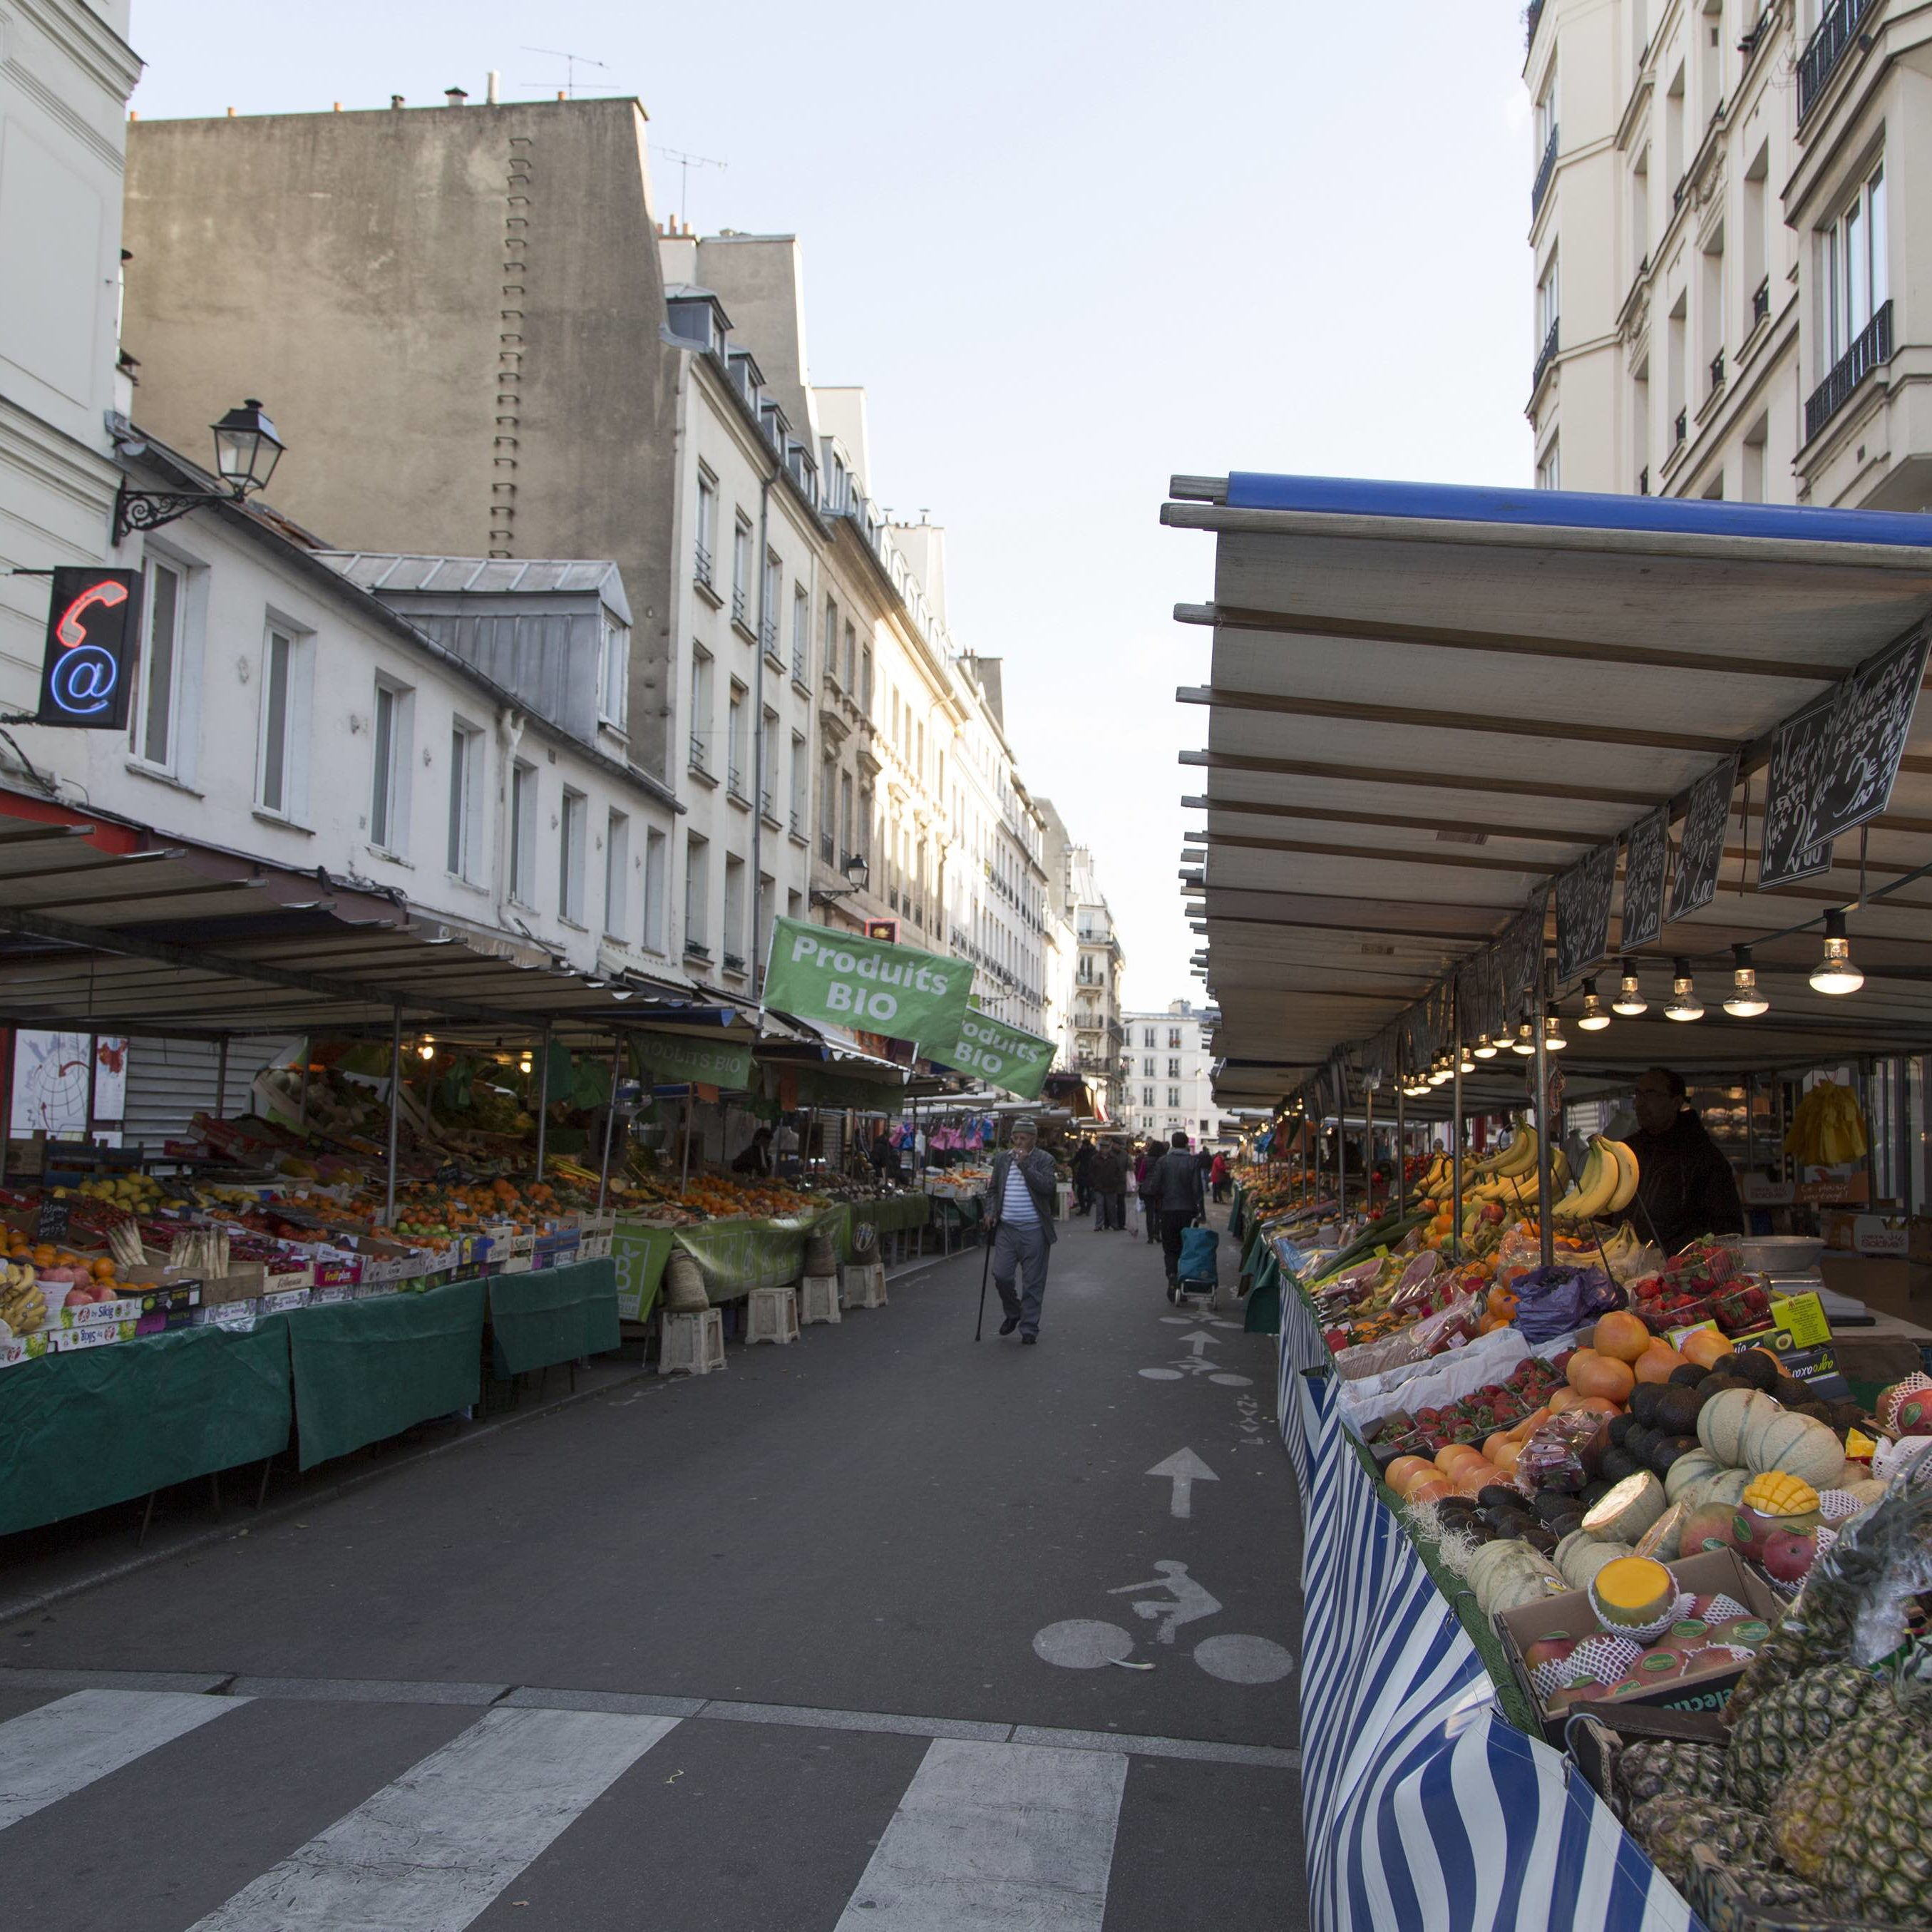 Sarah Shops at the Aligre Market, Paris, France during filming of Episode 107 for UpRooted